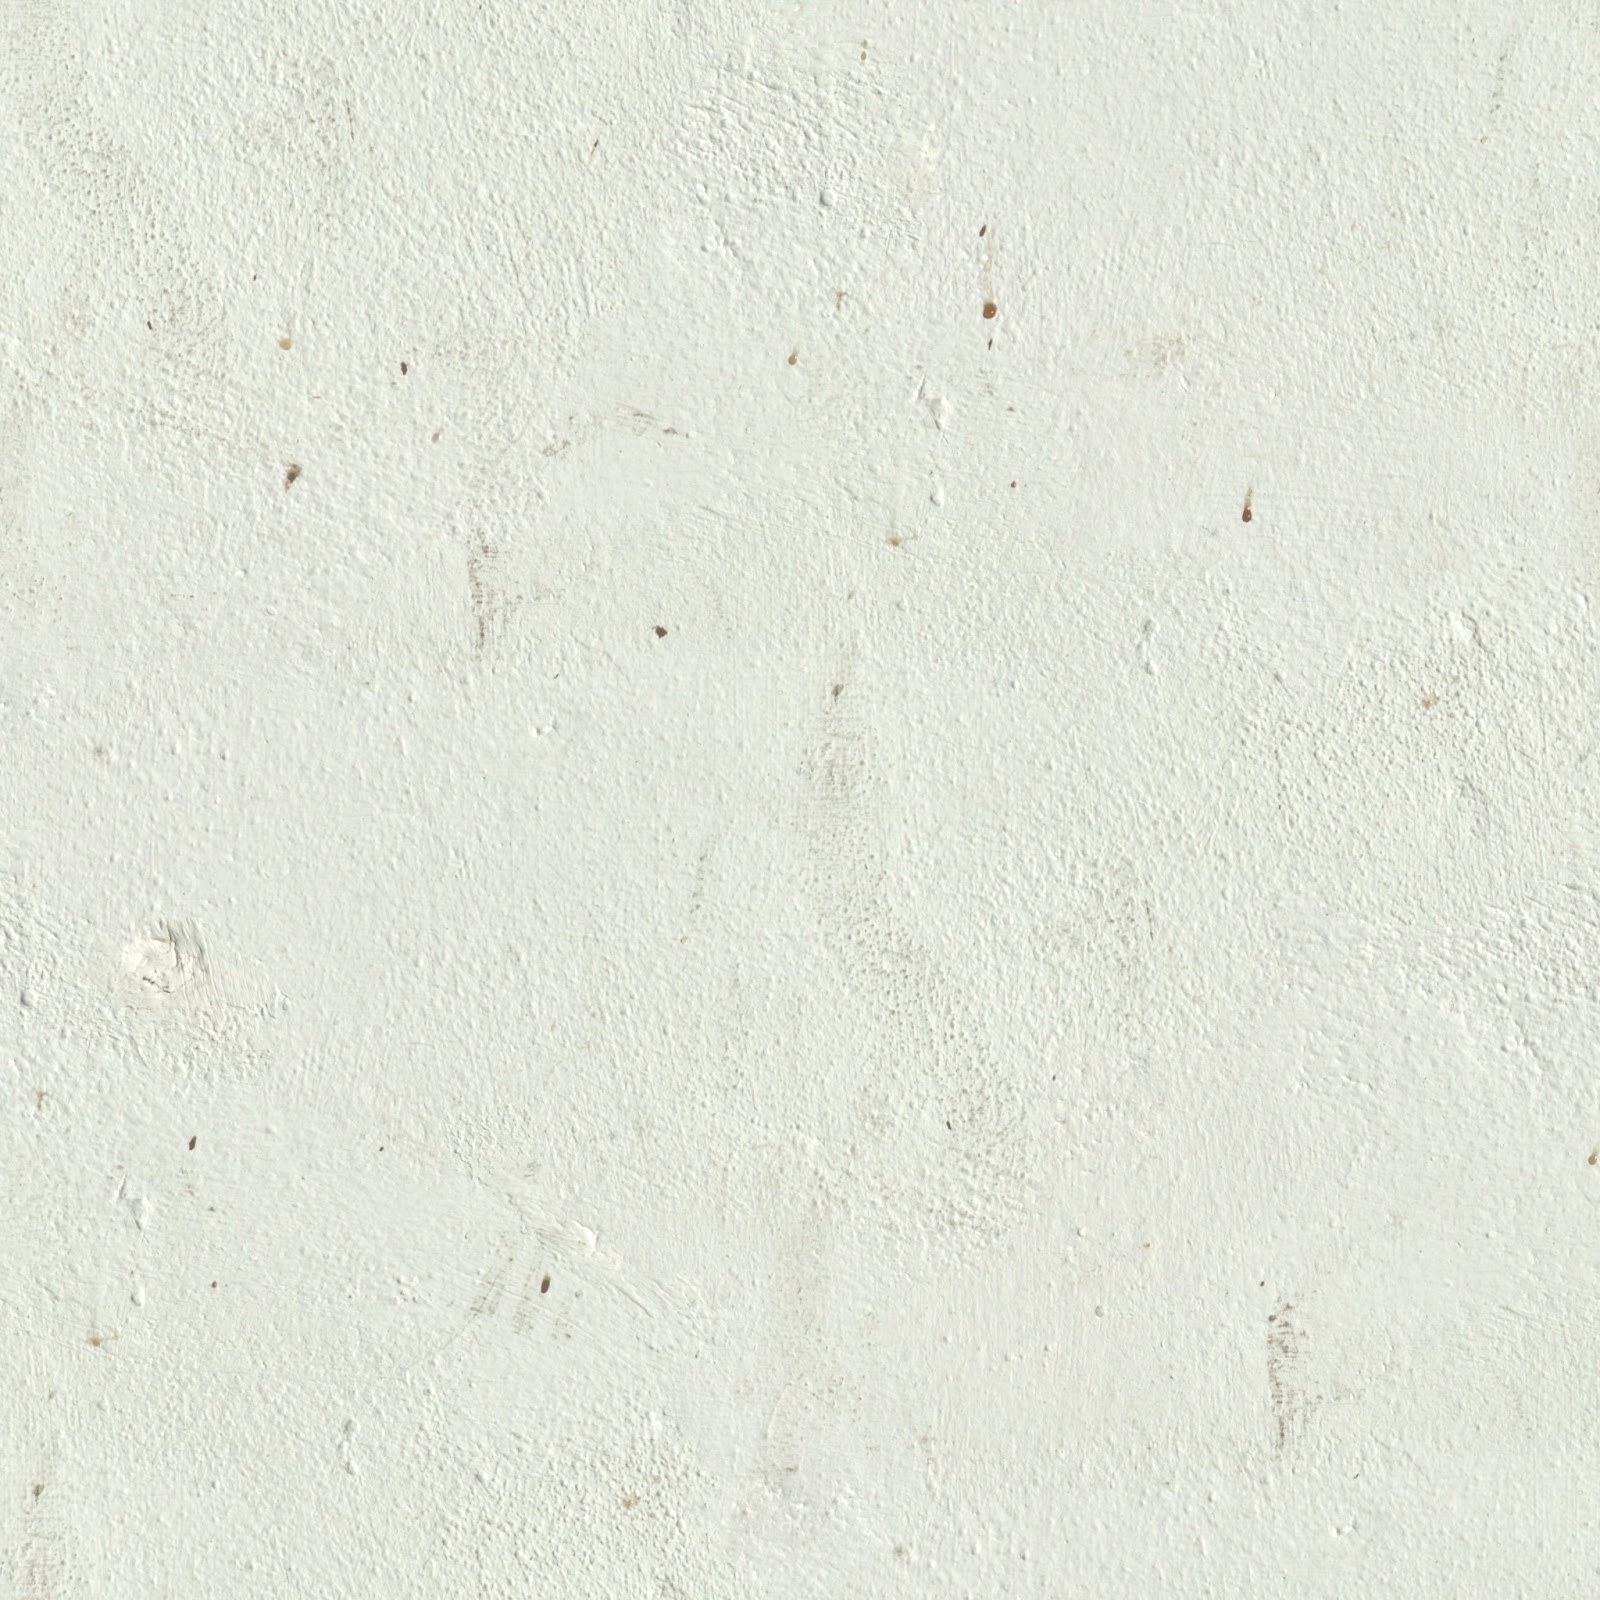 High Resolution Seamless Textures: Stucco white dirty wall ...